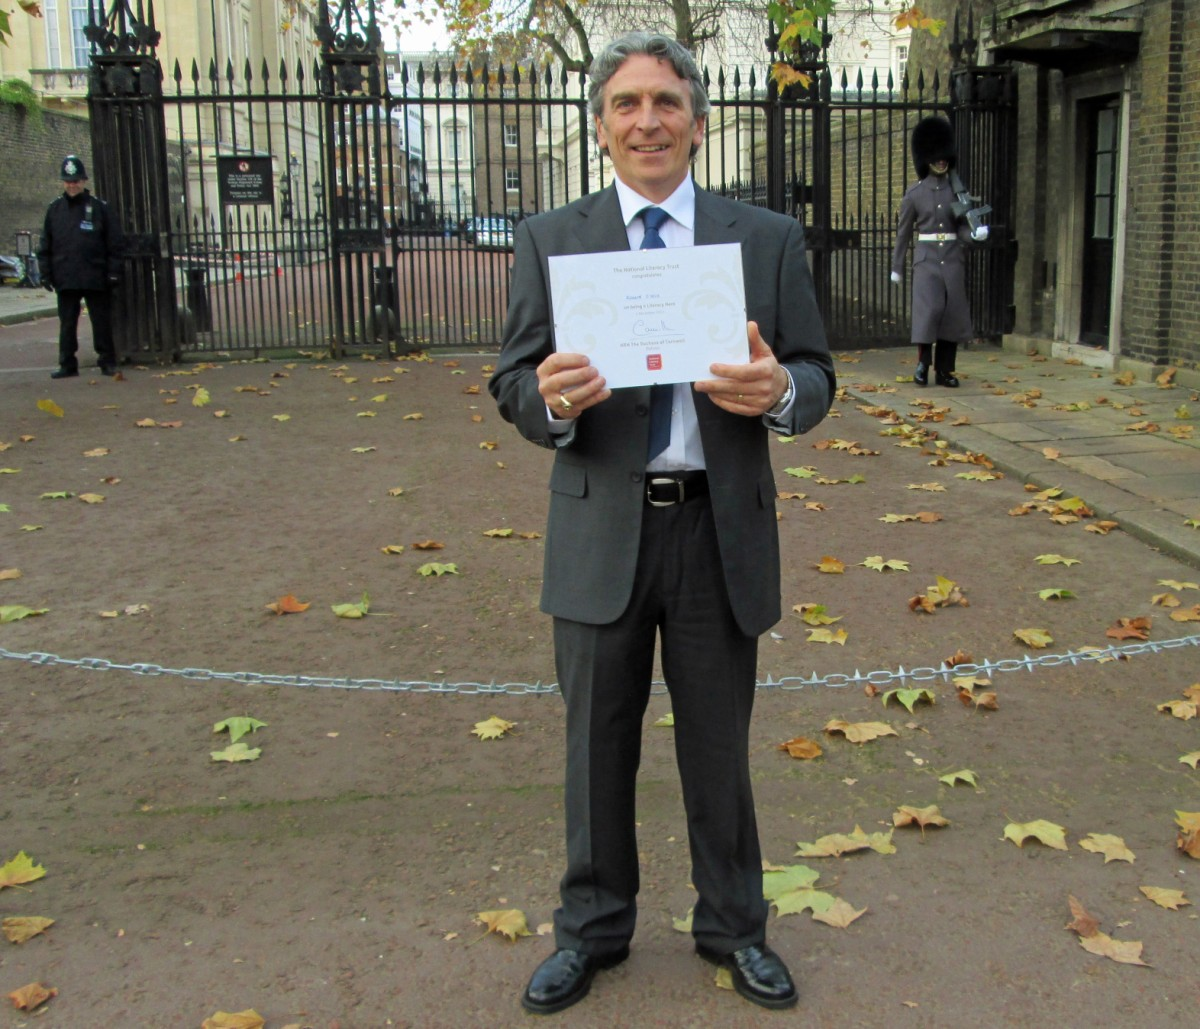 Richard O'Neill with his award outside Clarence House